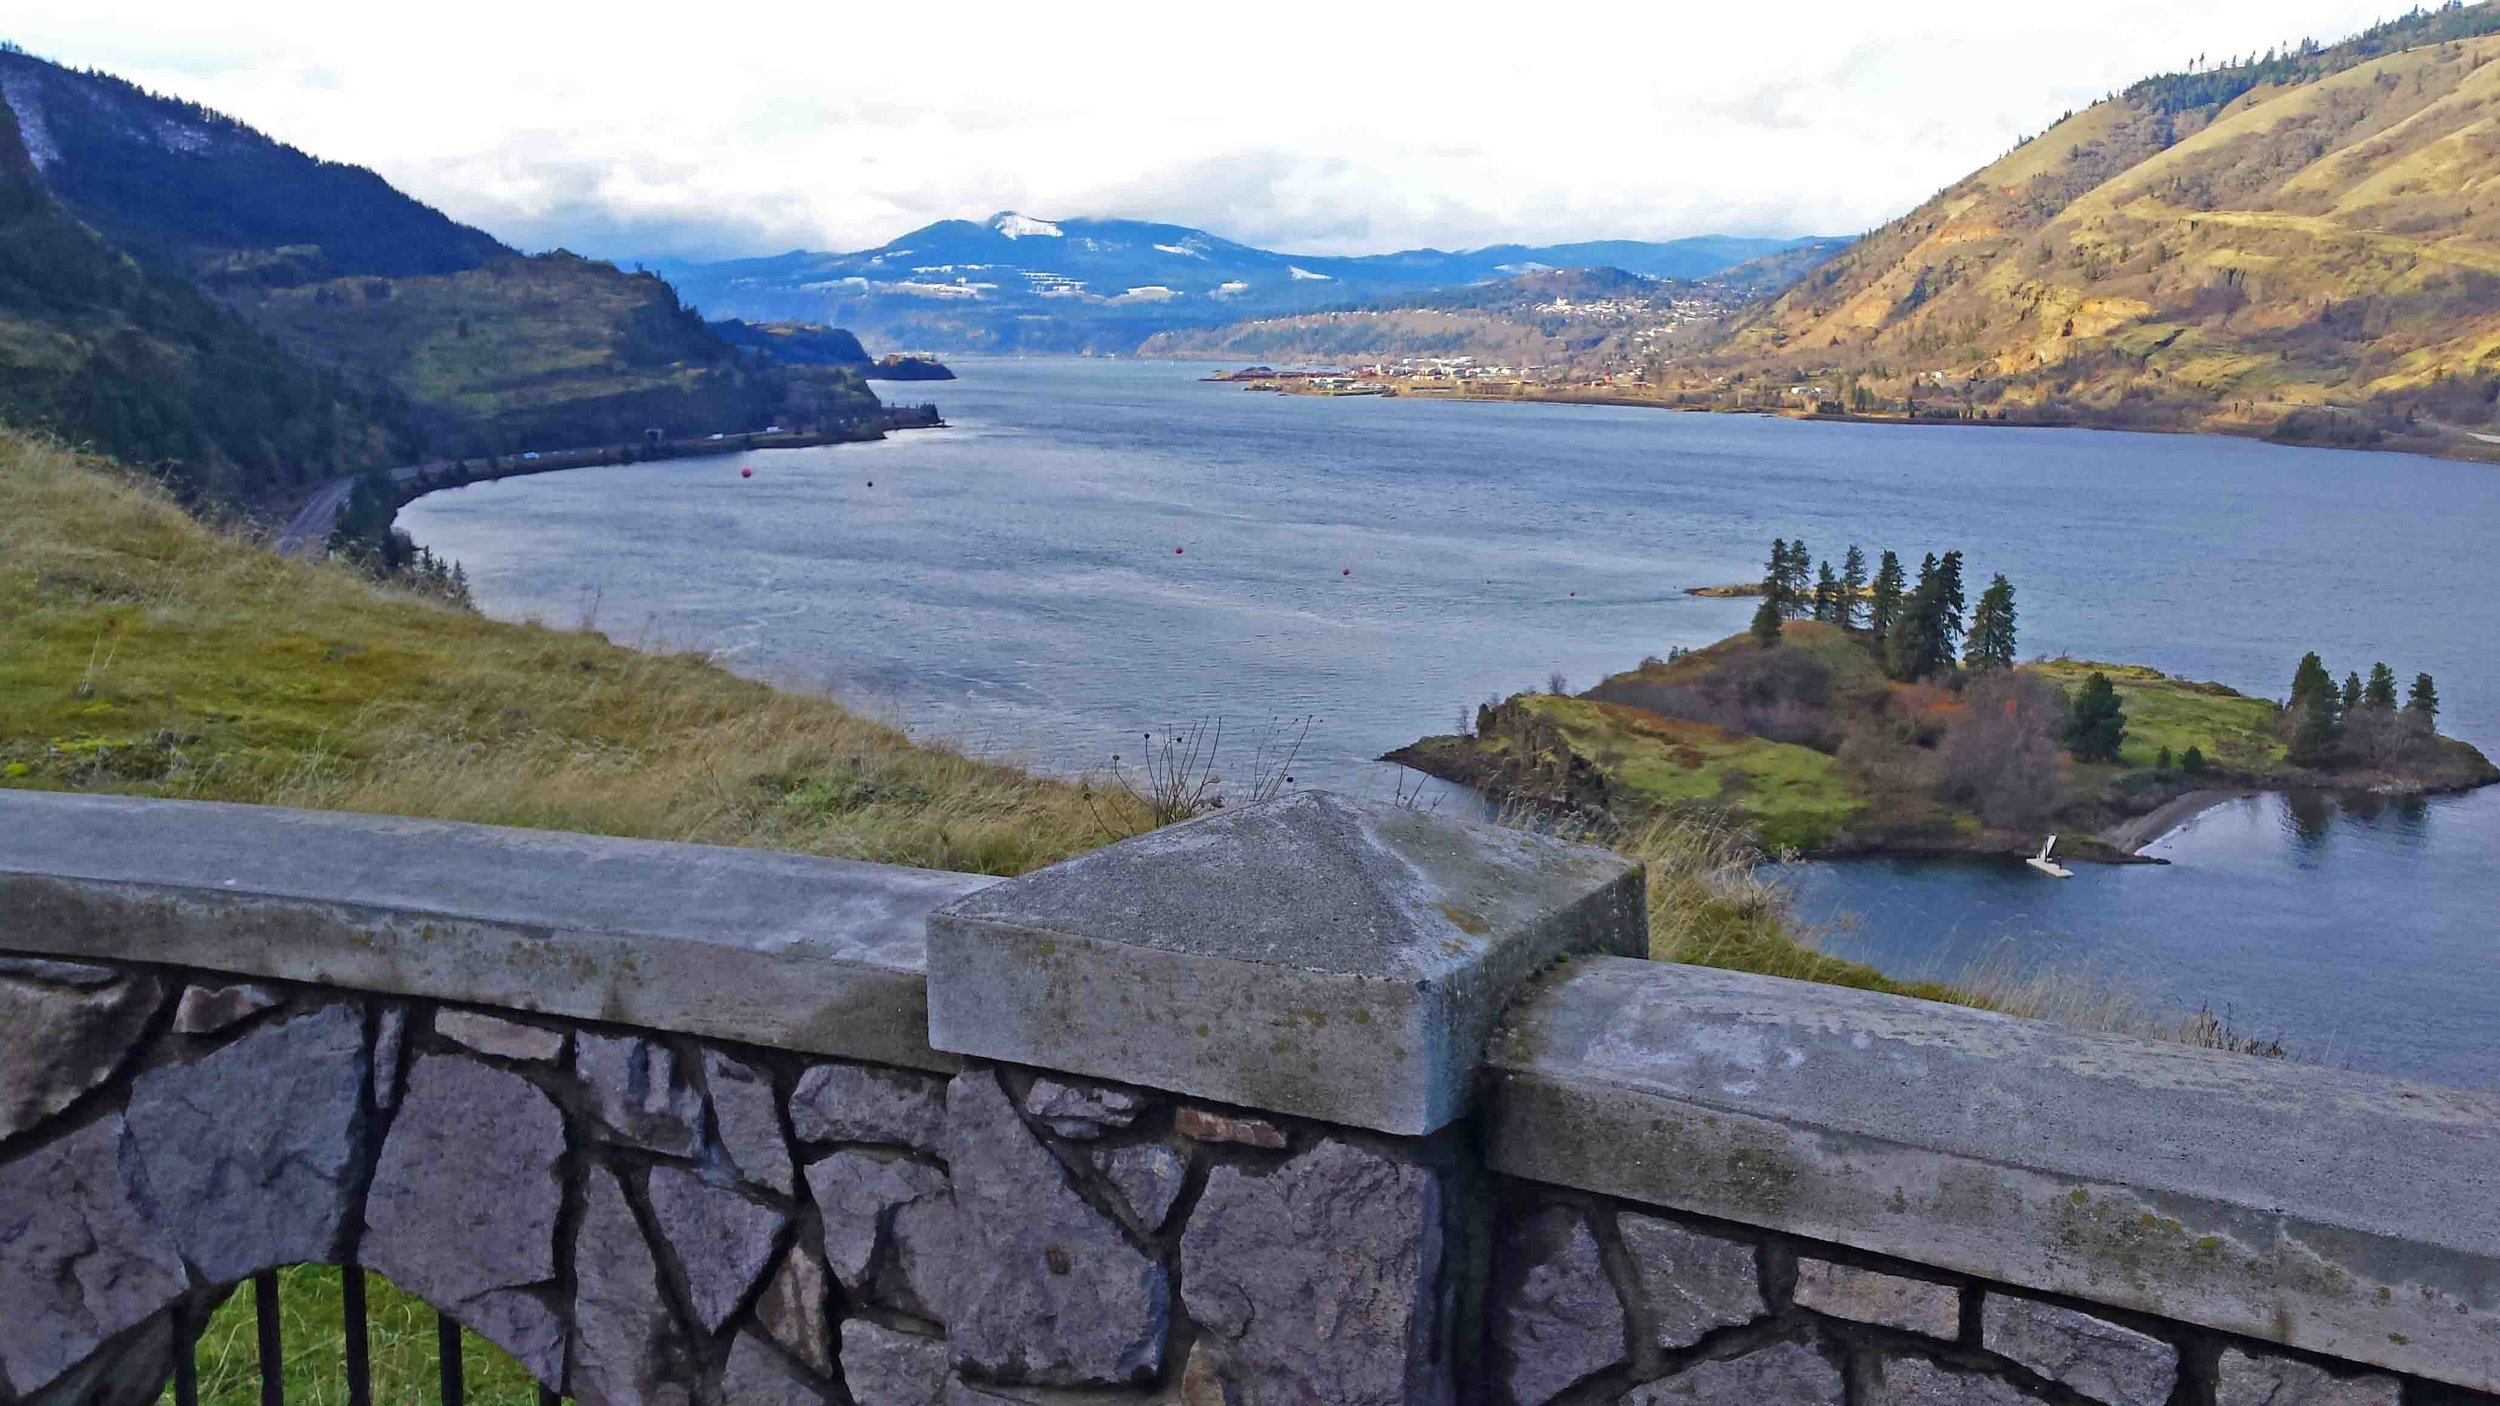 My Mosier. The Twin Tunnels trail looking west through the Columbia River Gorge.That's Chicken Charlie's Island on the right.  Photo: (c) Barb Ayers, DogDairy.org